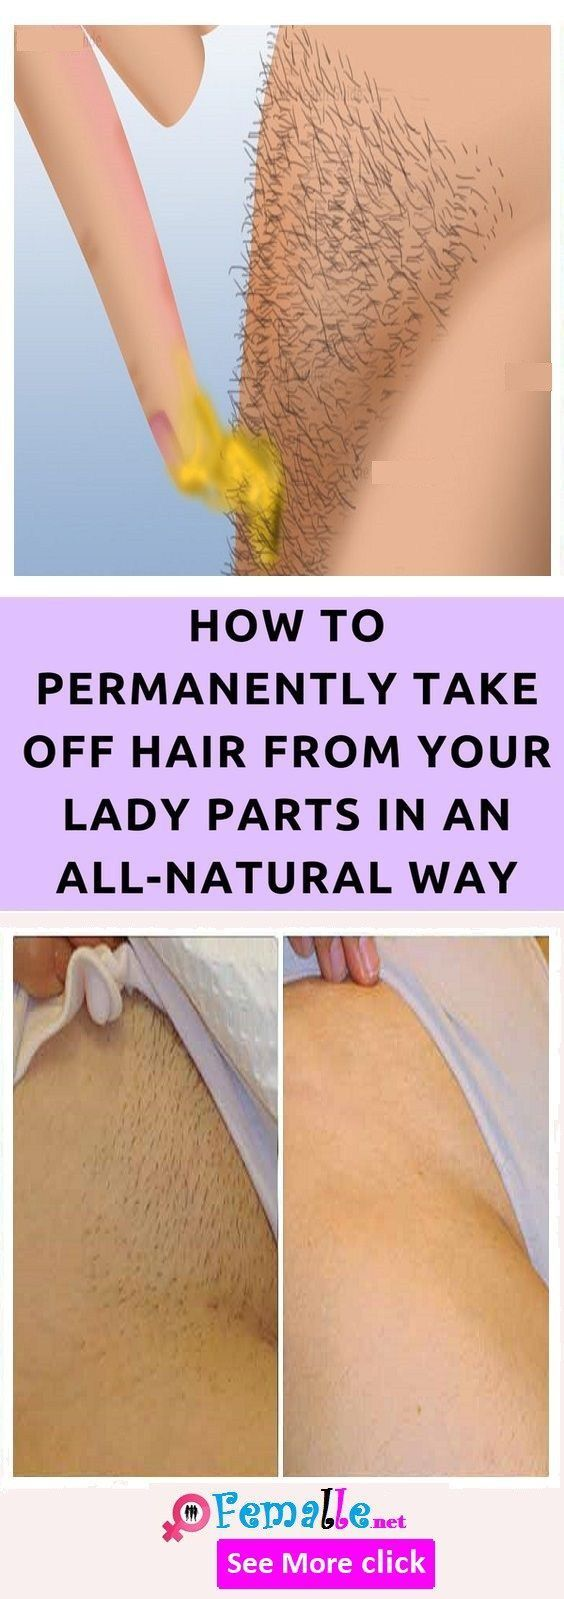 Amazing Tip Take A Look At How To Permanently Take Off Hair From